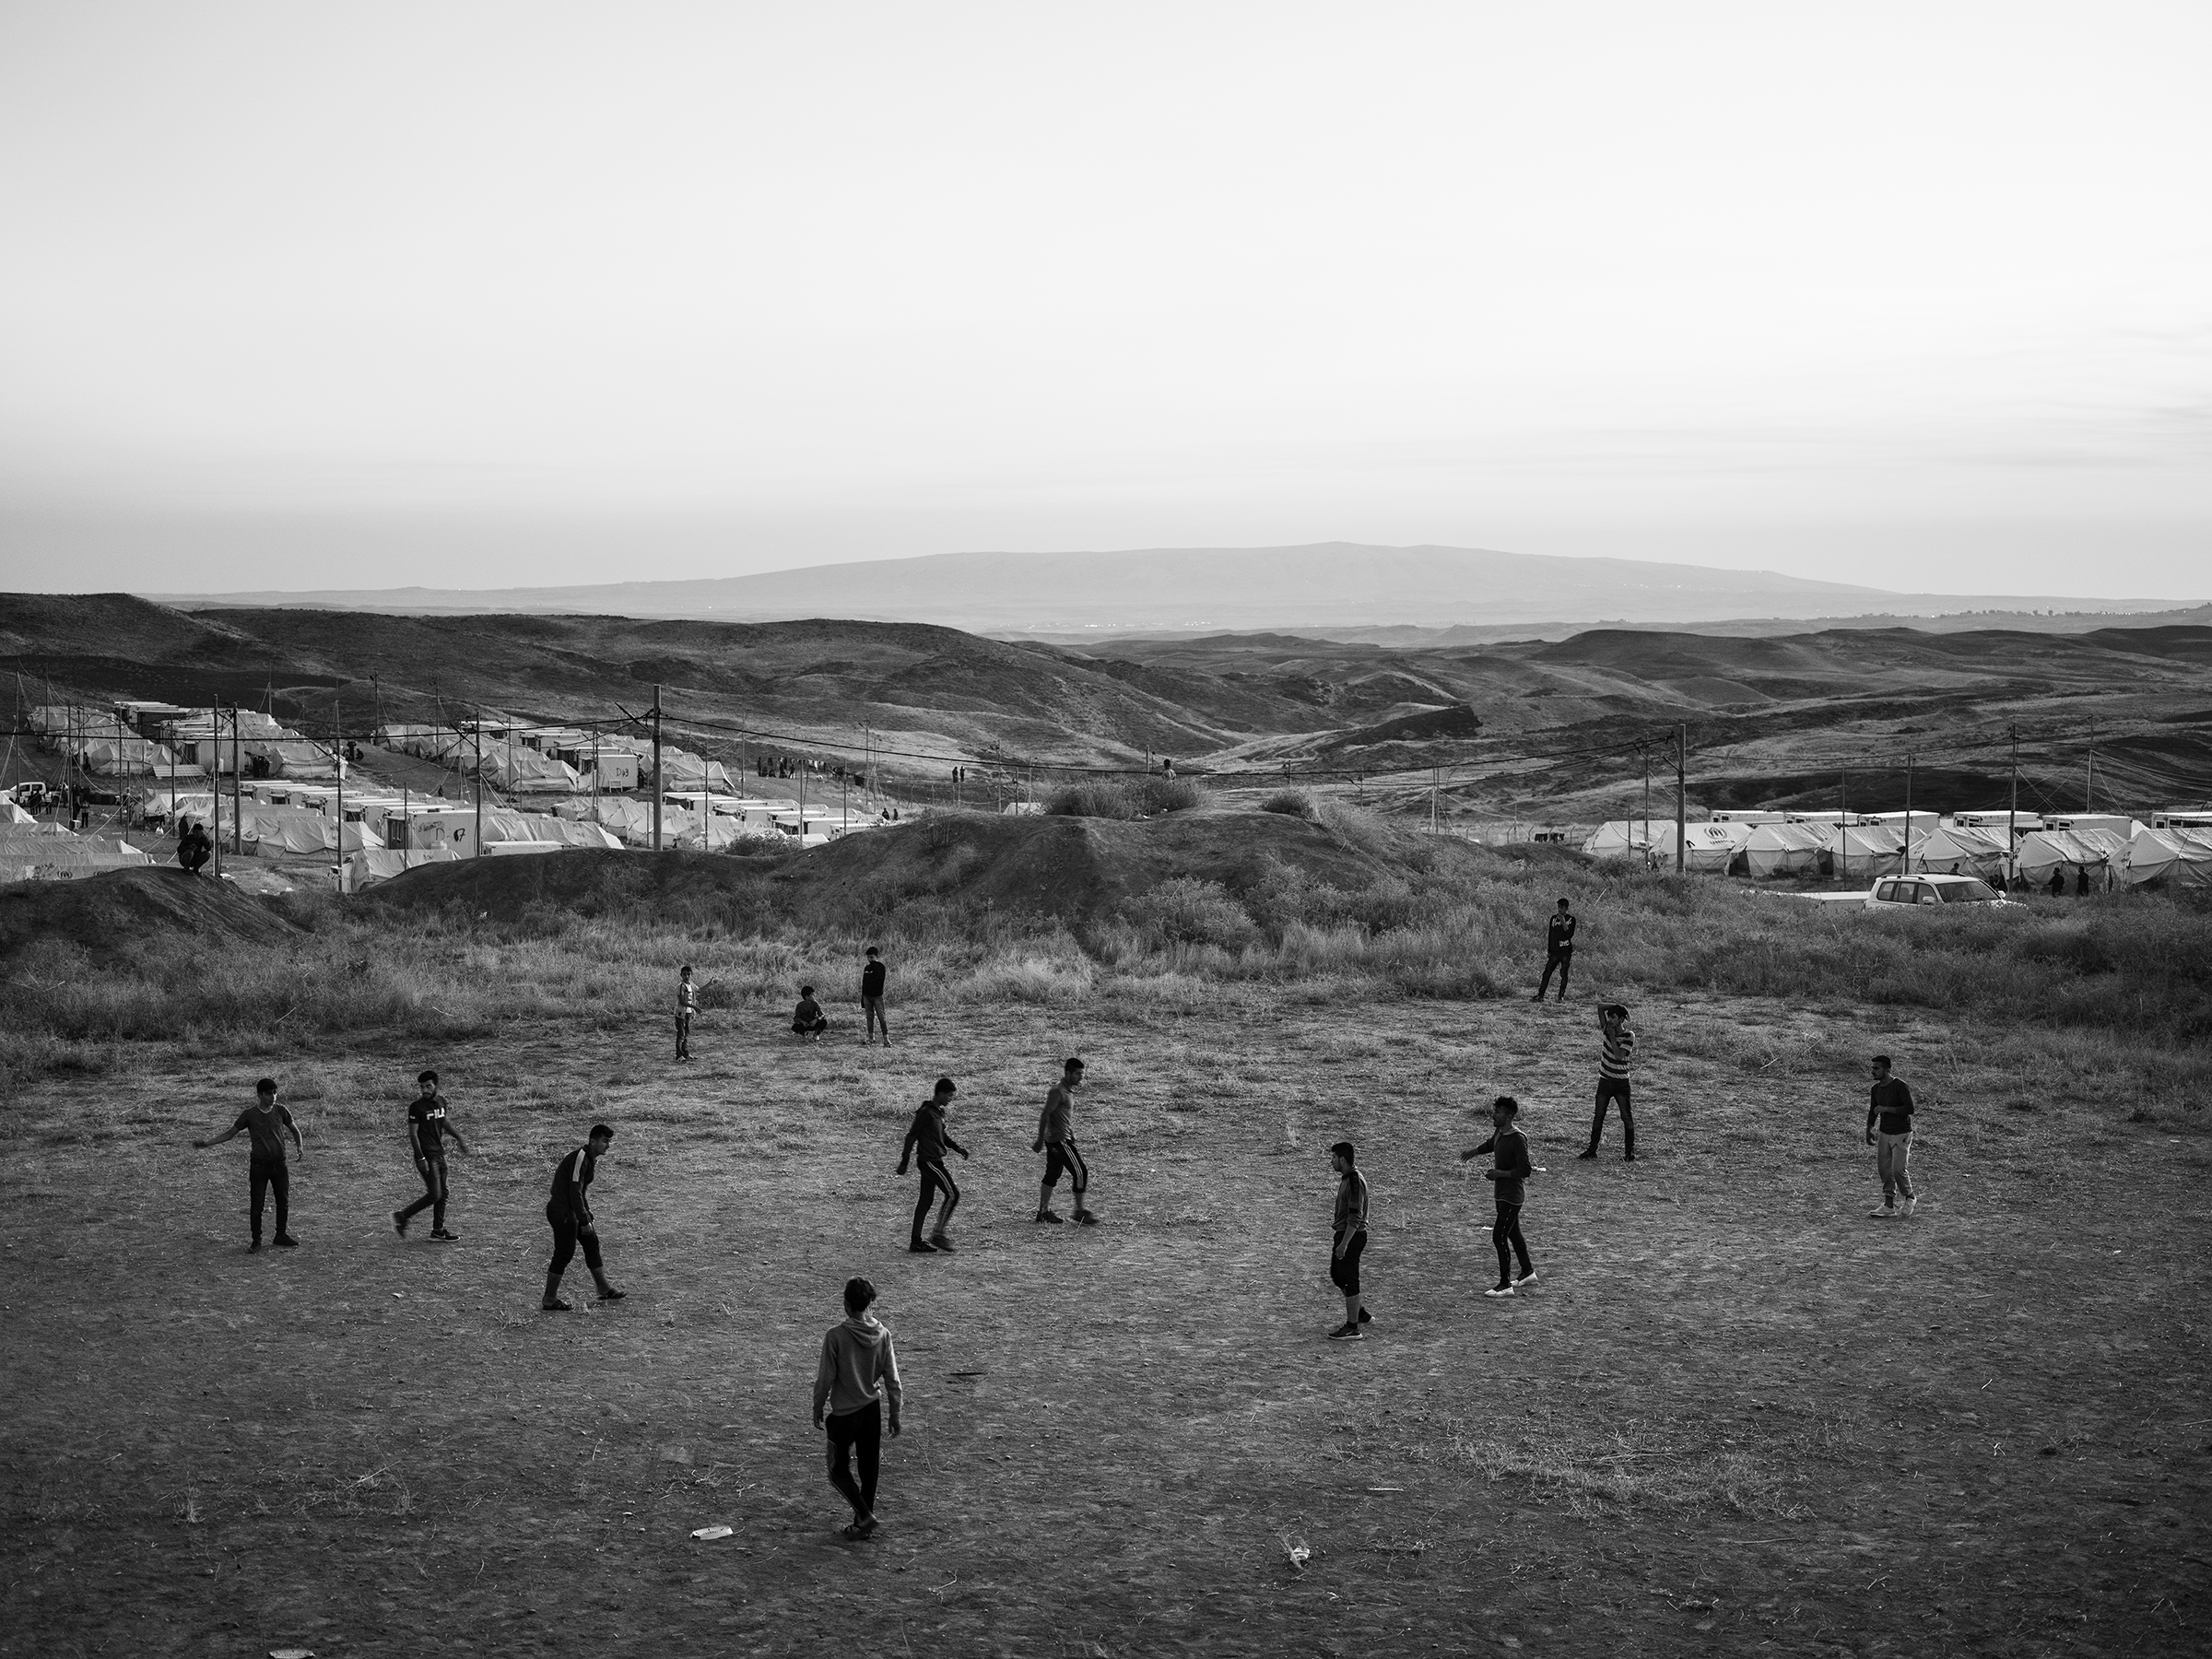 Refugees play soccer inside the Bardarash camp, which had hosted Iraqis displaced by the offensive against ISIS in Mosul and reopened in October to accommodate Kurds fleeing the Turkish offensive in Syria.